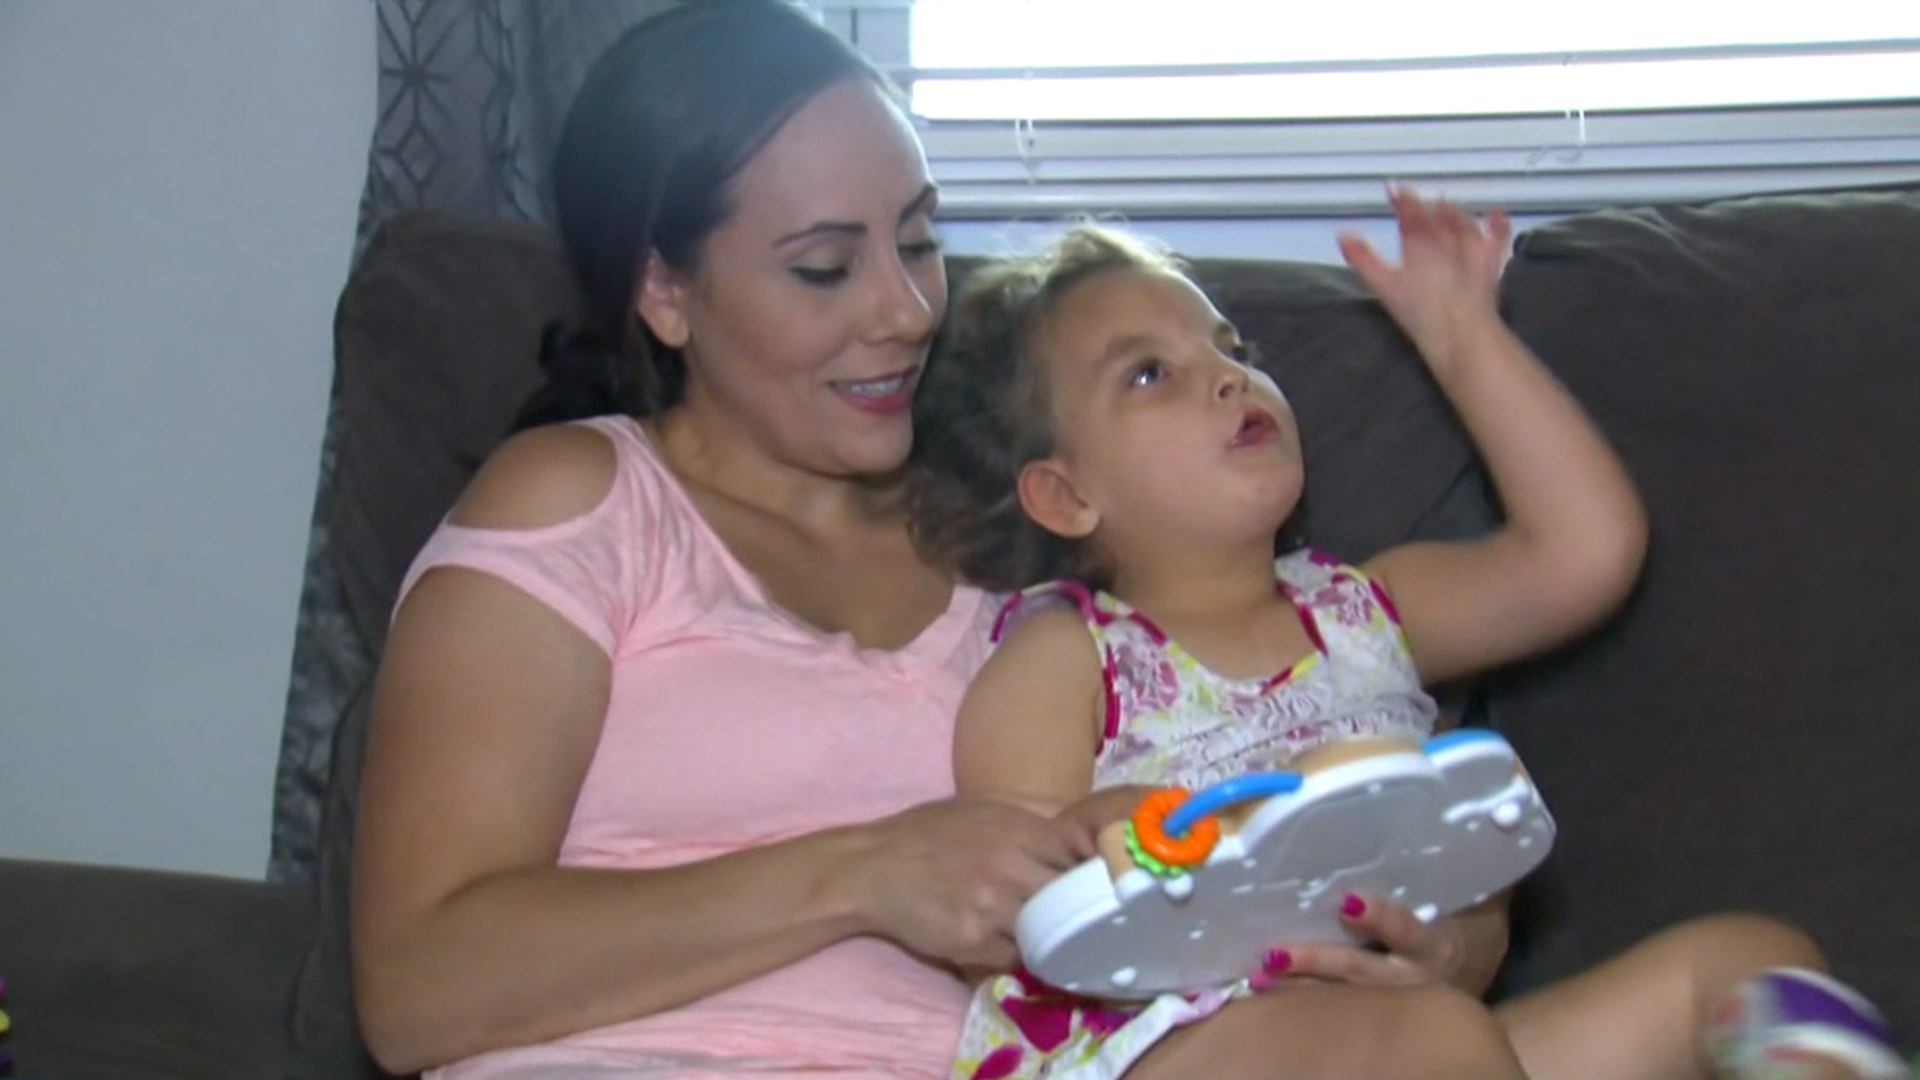 Texas couple considering divorce to help pay for daughter's health care costs